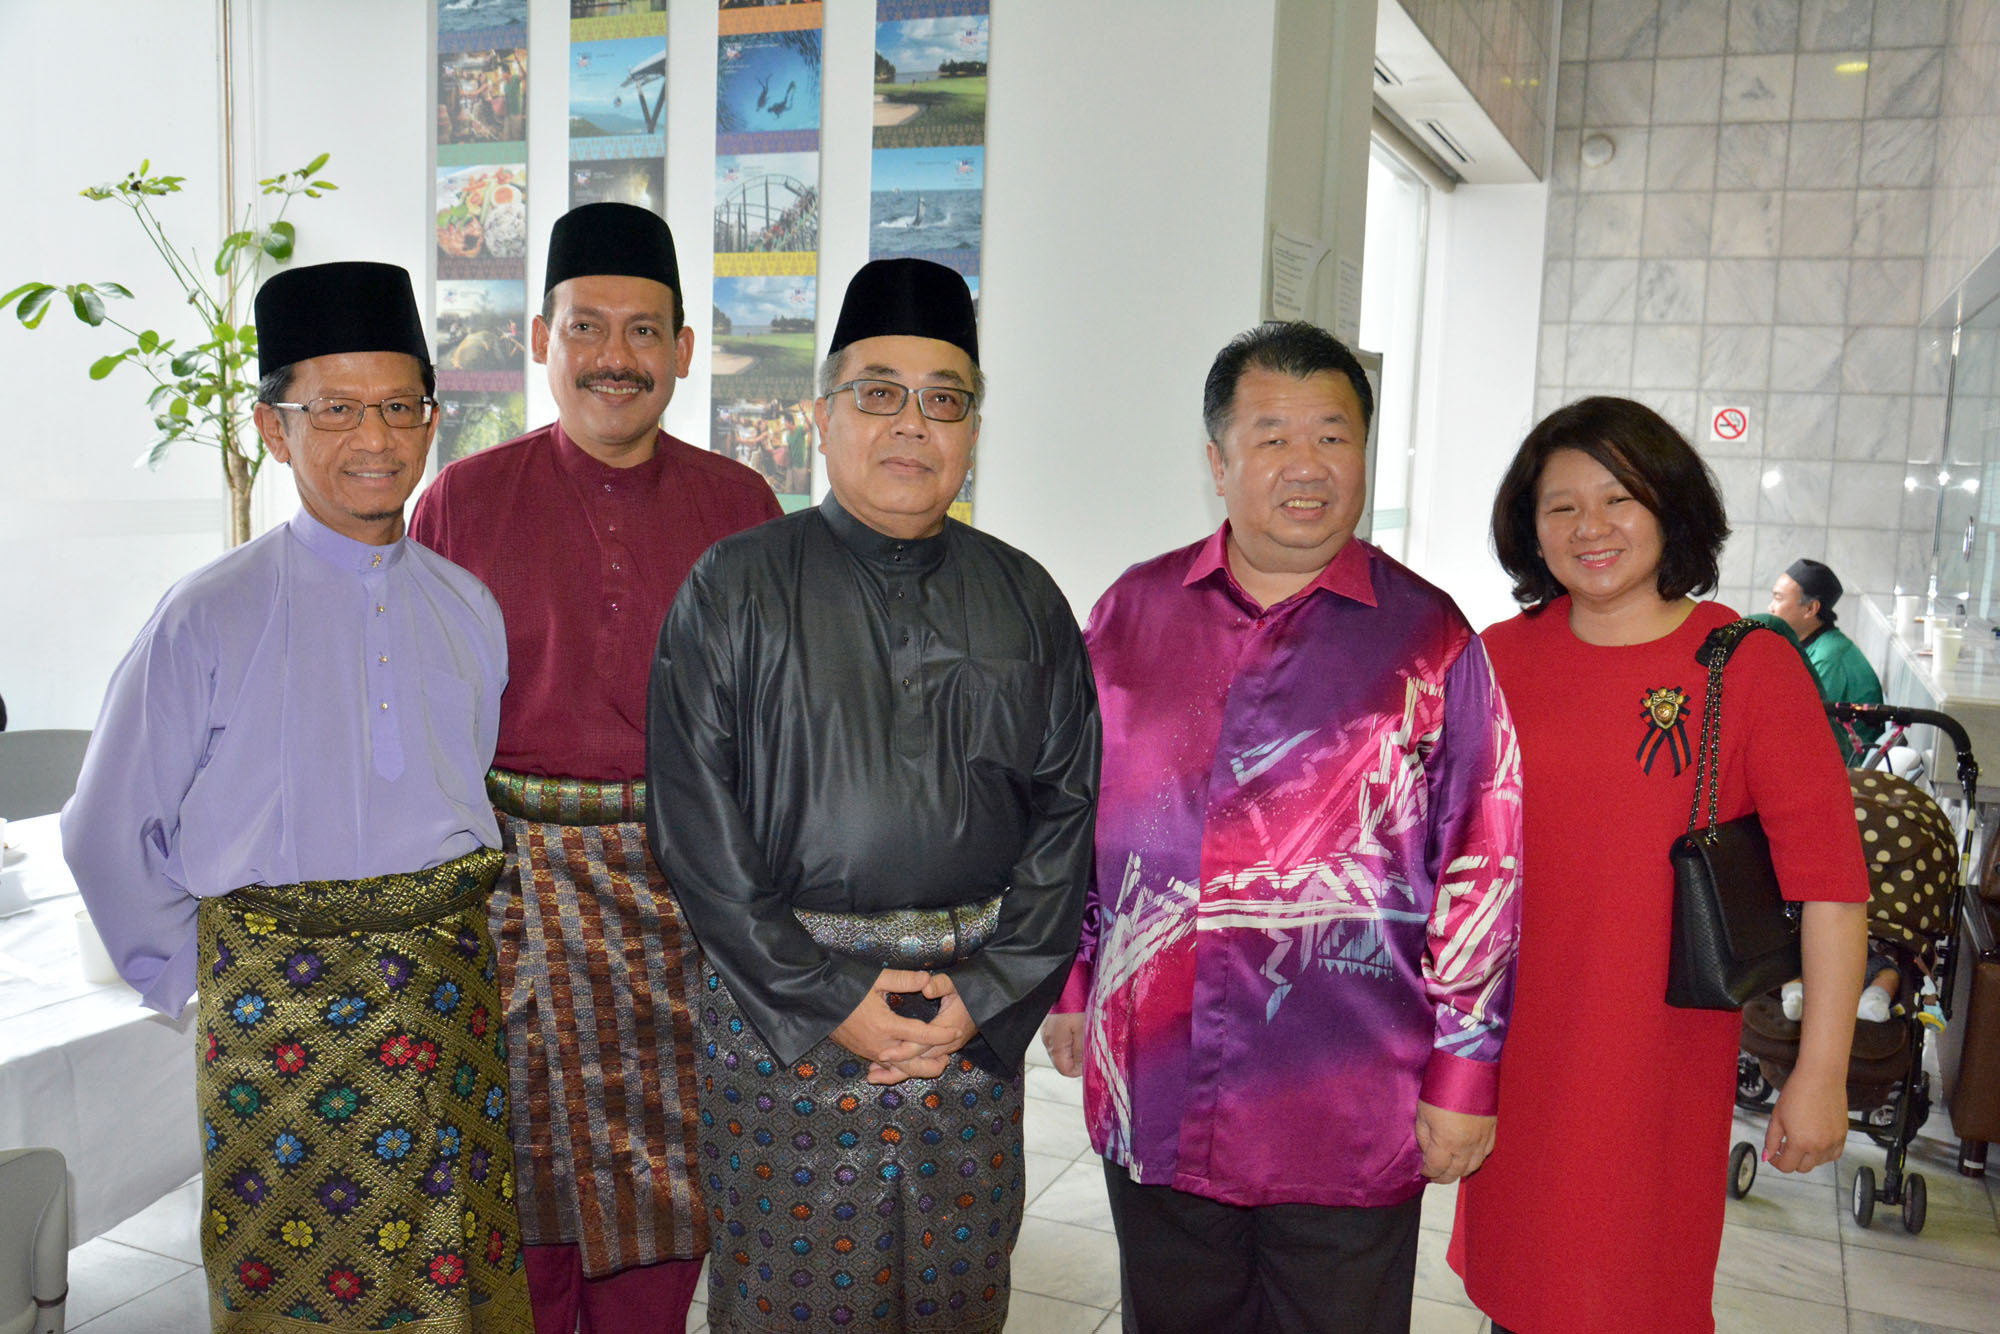 From left: Ambassador of Brunei to Japan Mahamud Ahmad; Director of Tourism Malaysia in Japan Noor Azlan Abu Bakar; Ambassador of Malaysia to Japan Dato' Ahmad Izlan Idris; CEO of Eitoshin Shoji Co. Datuk Seri Tam Yun Tong; and Director of Eitoshin Shoji Co. Datin Seri Ang Hui Chin pose at an event to celebrate the Eid al-Fitr festival at the Malaysian Embassy in Tokyo on July 6. |  EDLEEN OTHMAN